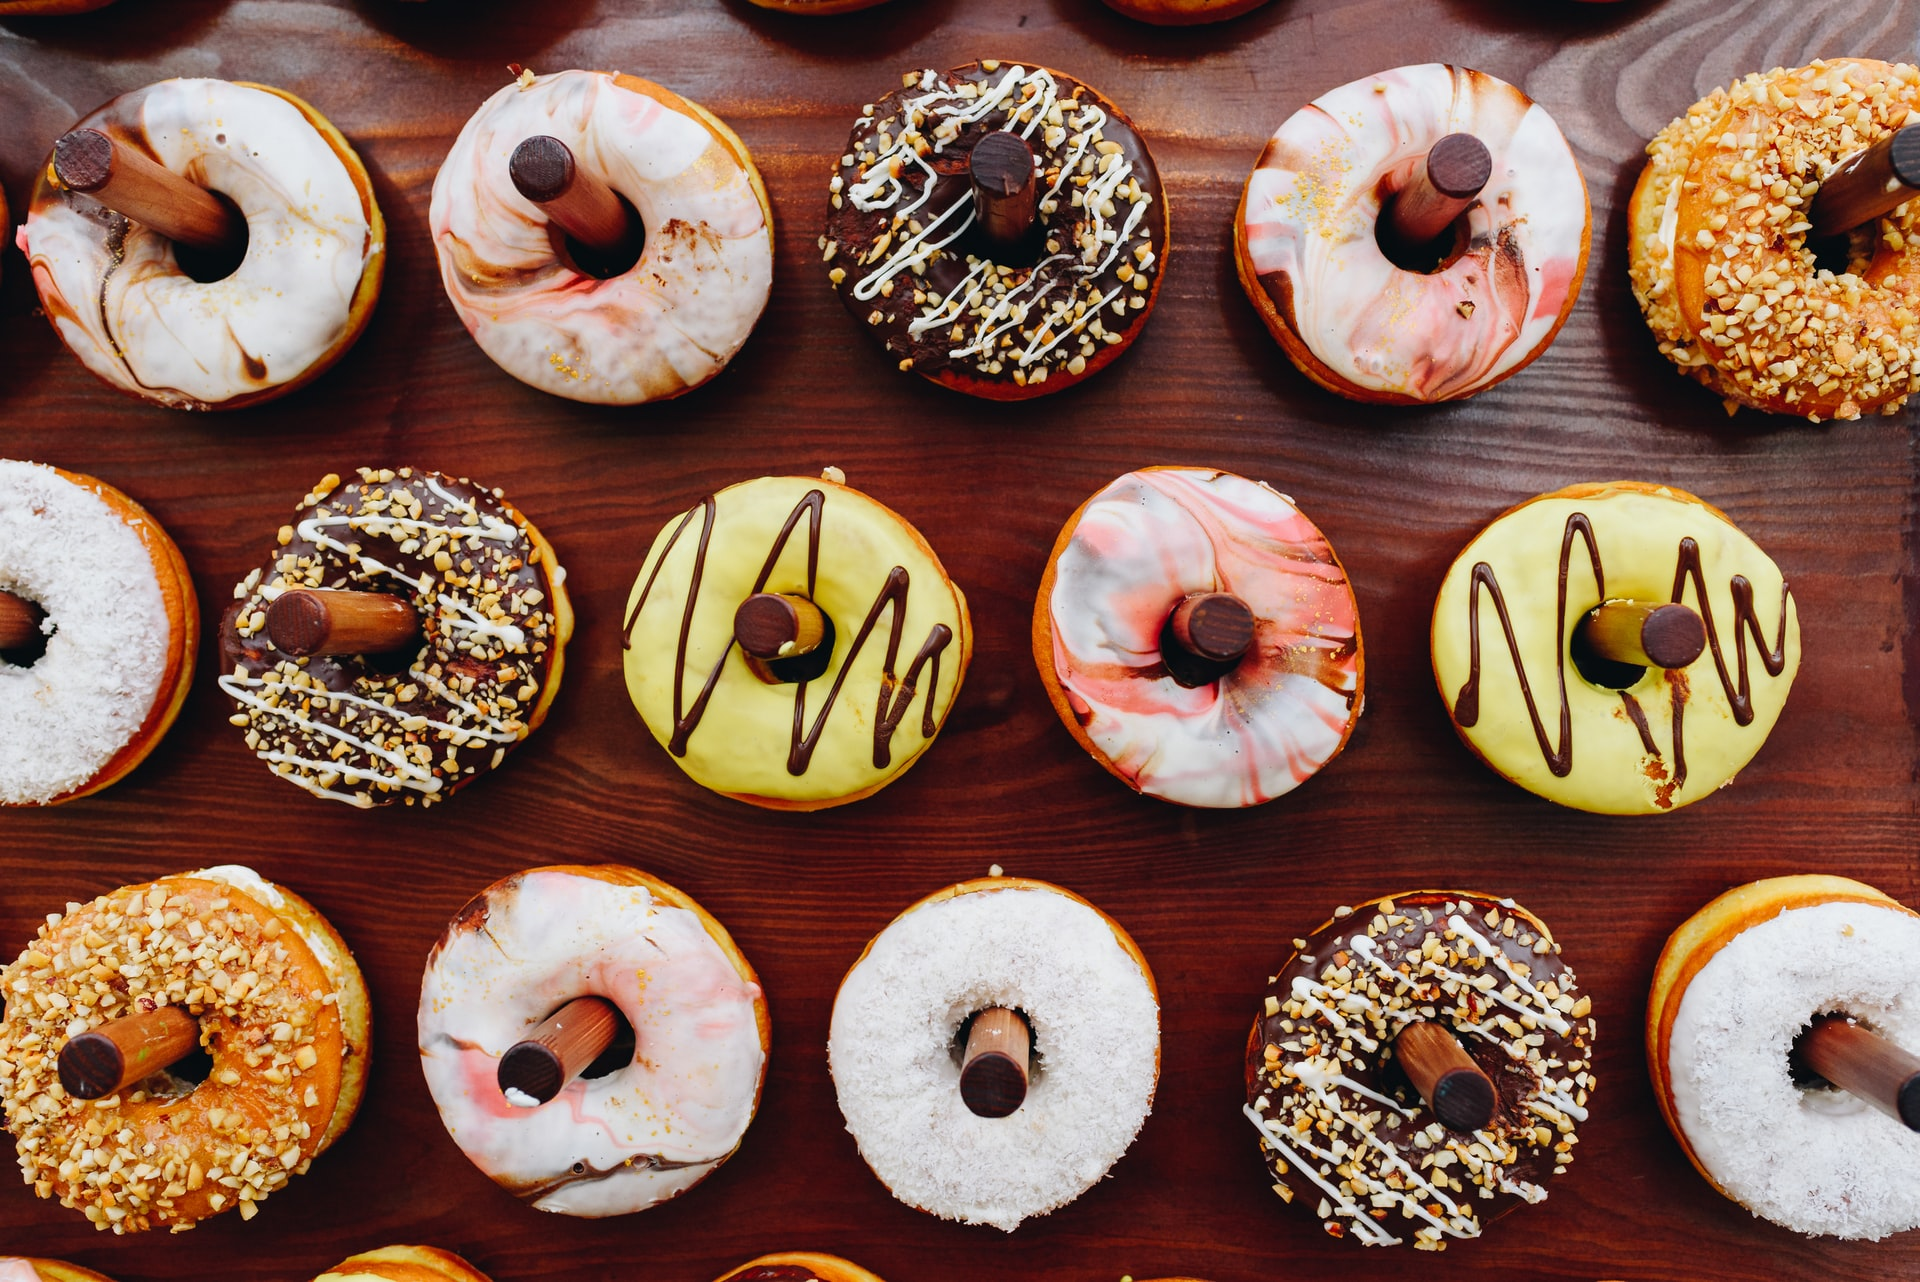 7 Ways To Curb Your Food Cravings When Trying To Lose Weight